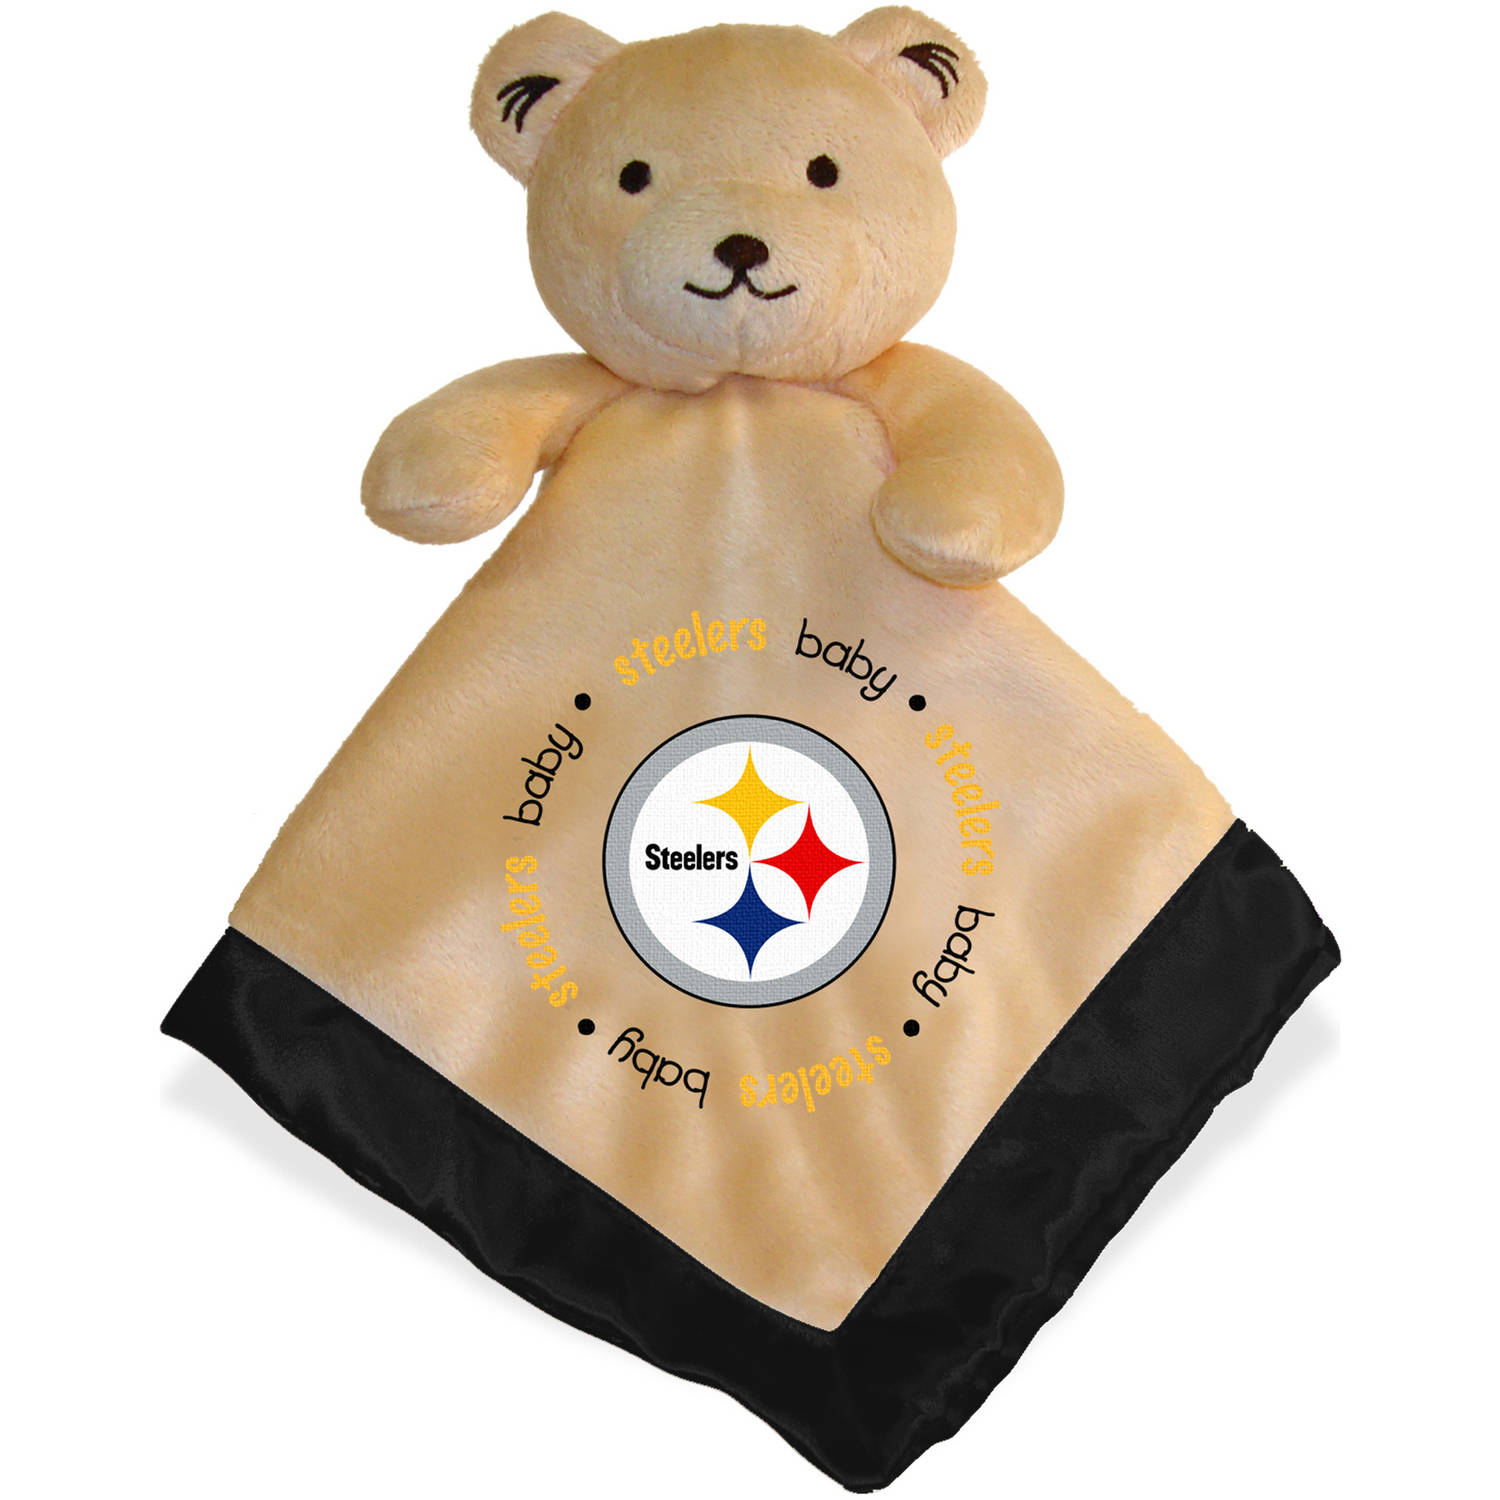 Baby Fanatic Snuggle Bear, Pittsburgh Steelers